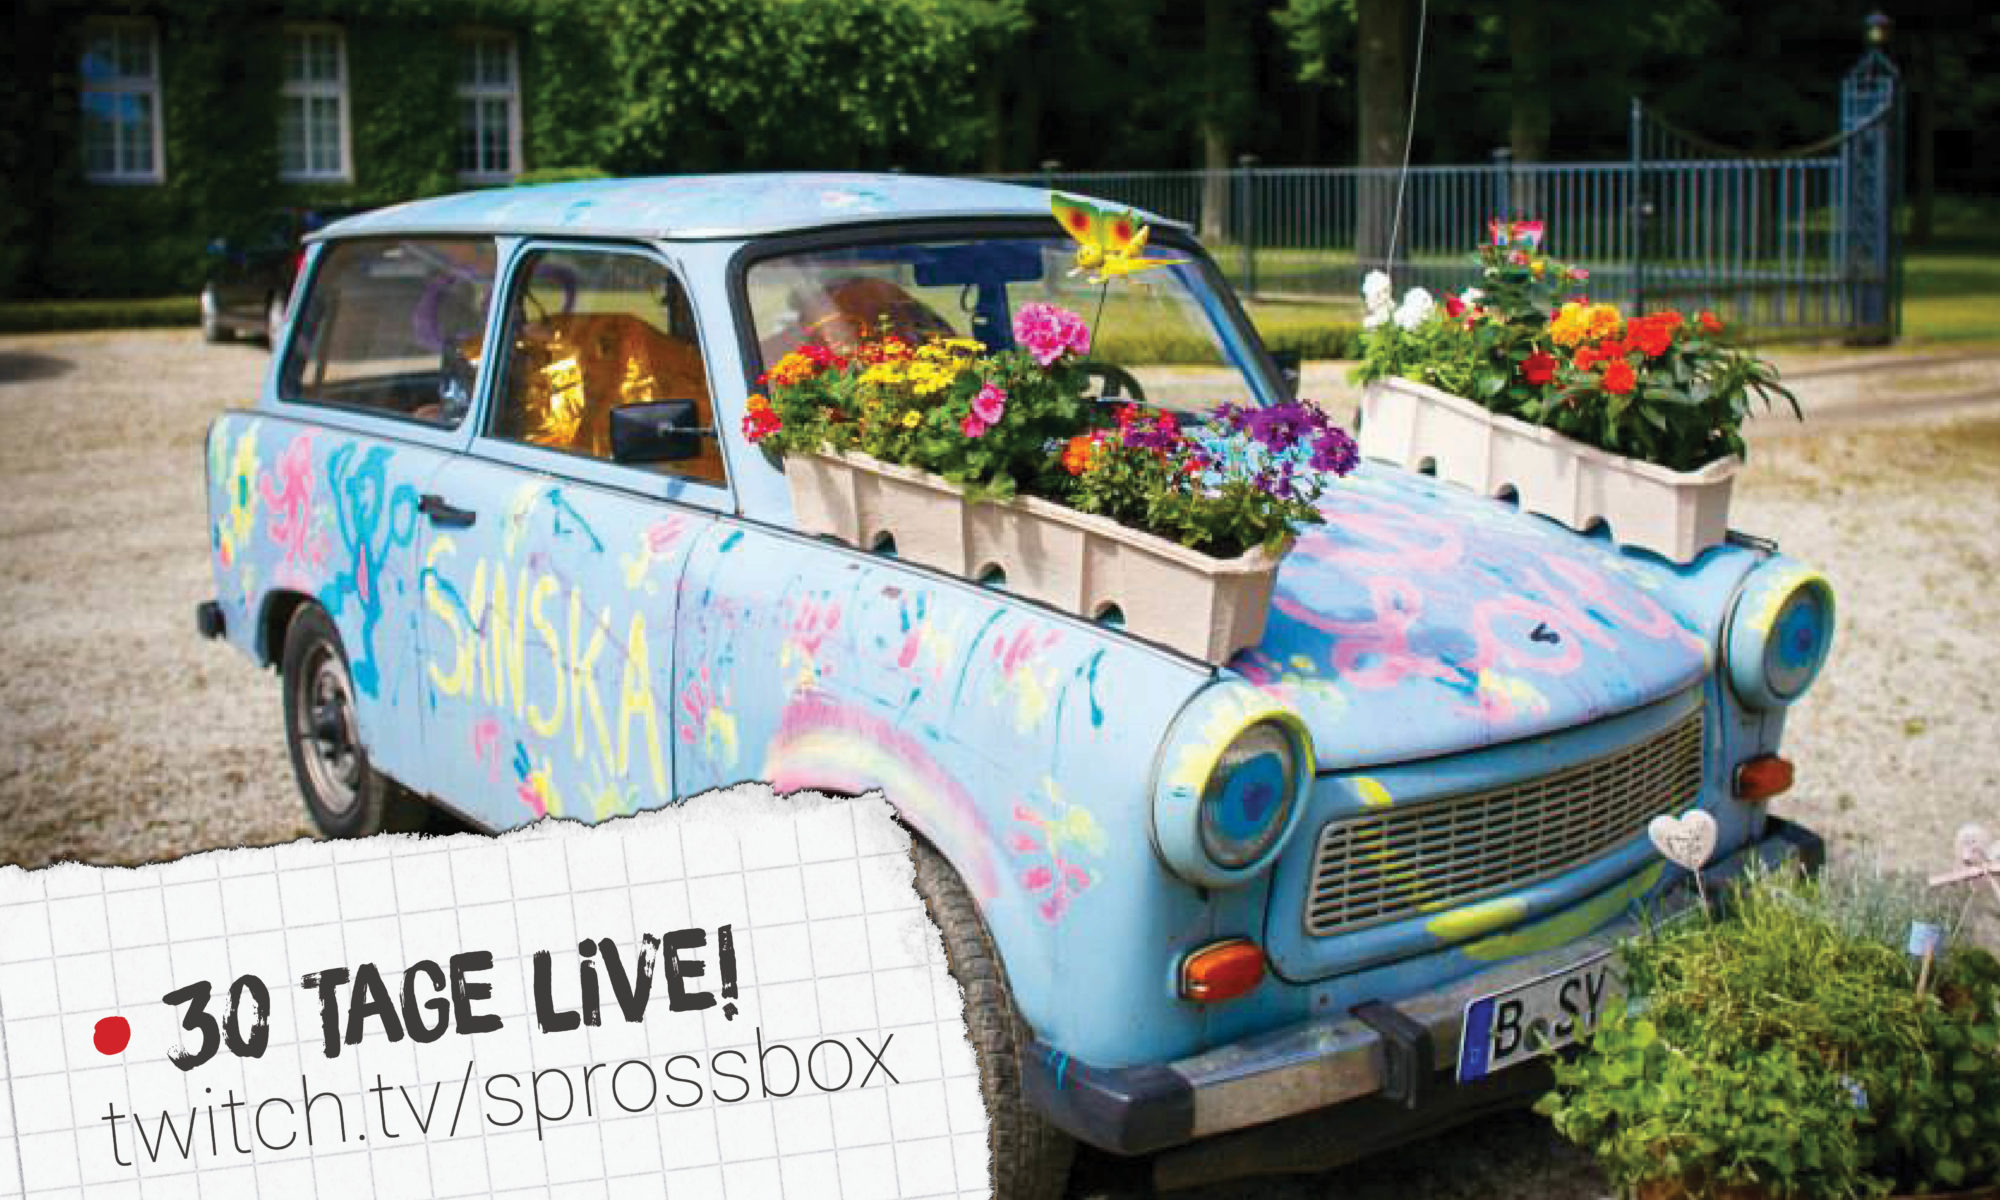 Trabbi mit Sprossbox